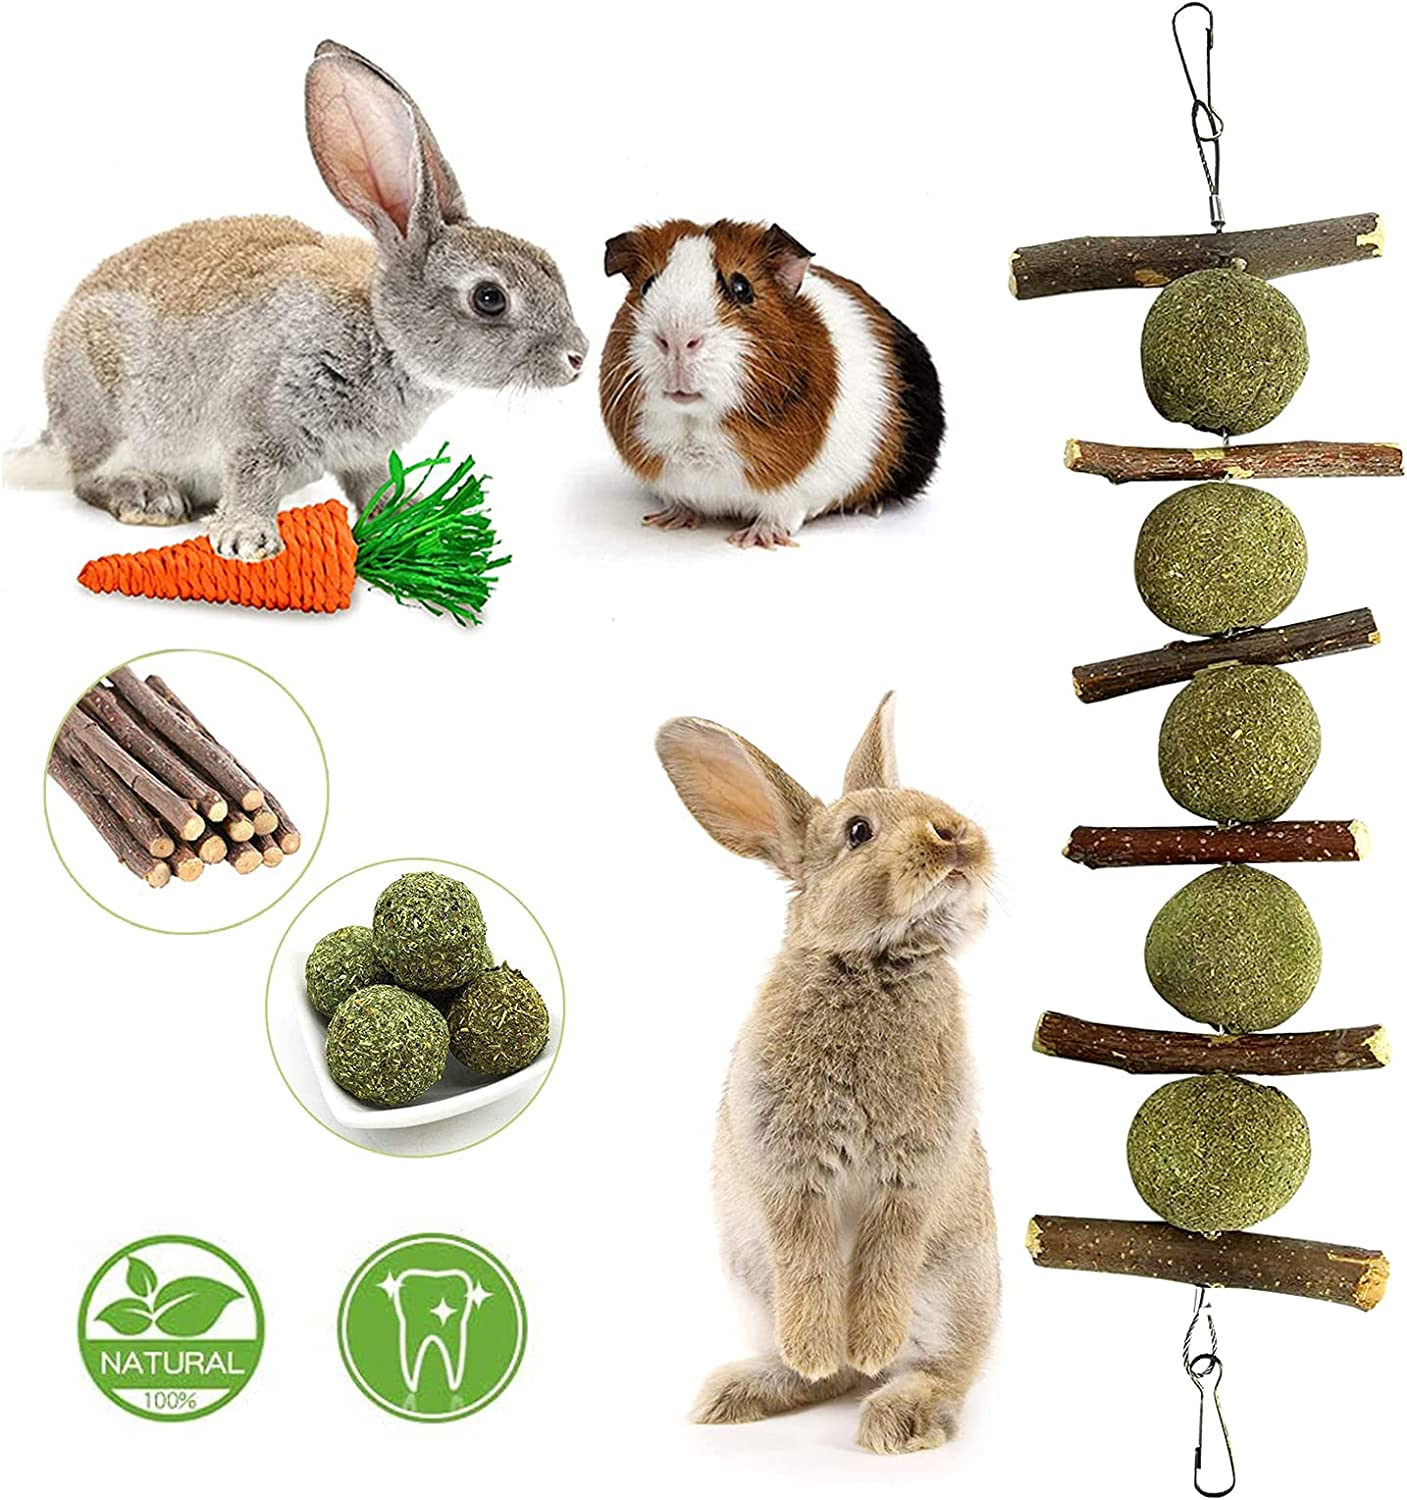 Rabbit Toys, Bunny Chew Toy for Teeth & Gnawing Treats, 100% Natural Organic Wood Apple Sticks and Timothy Hay Balls, Carrot Toys for Rabbit, Bunny,Chinchillas, Guinea Pigs, Hamsters, Rodent